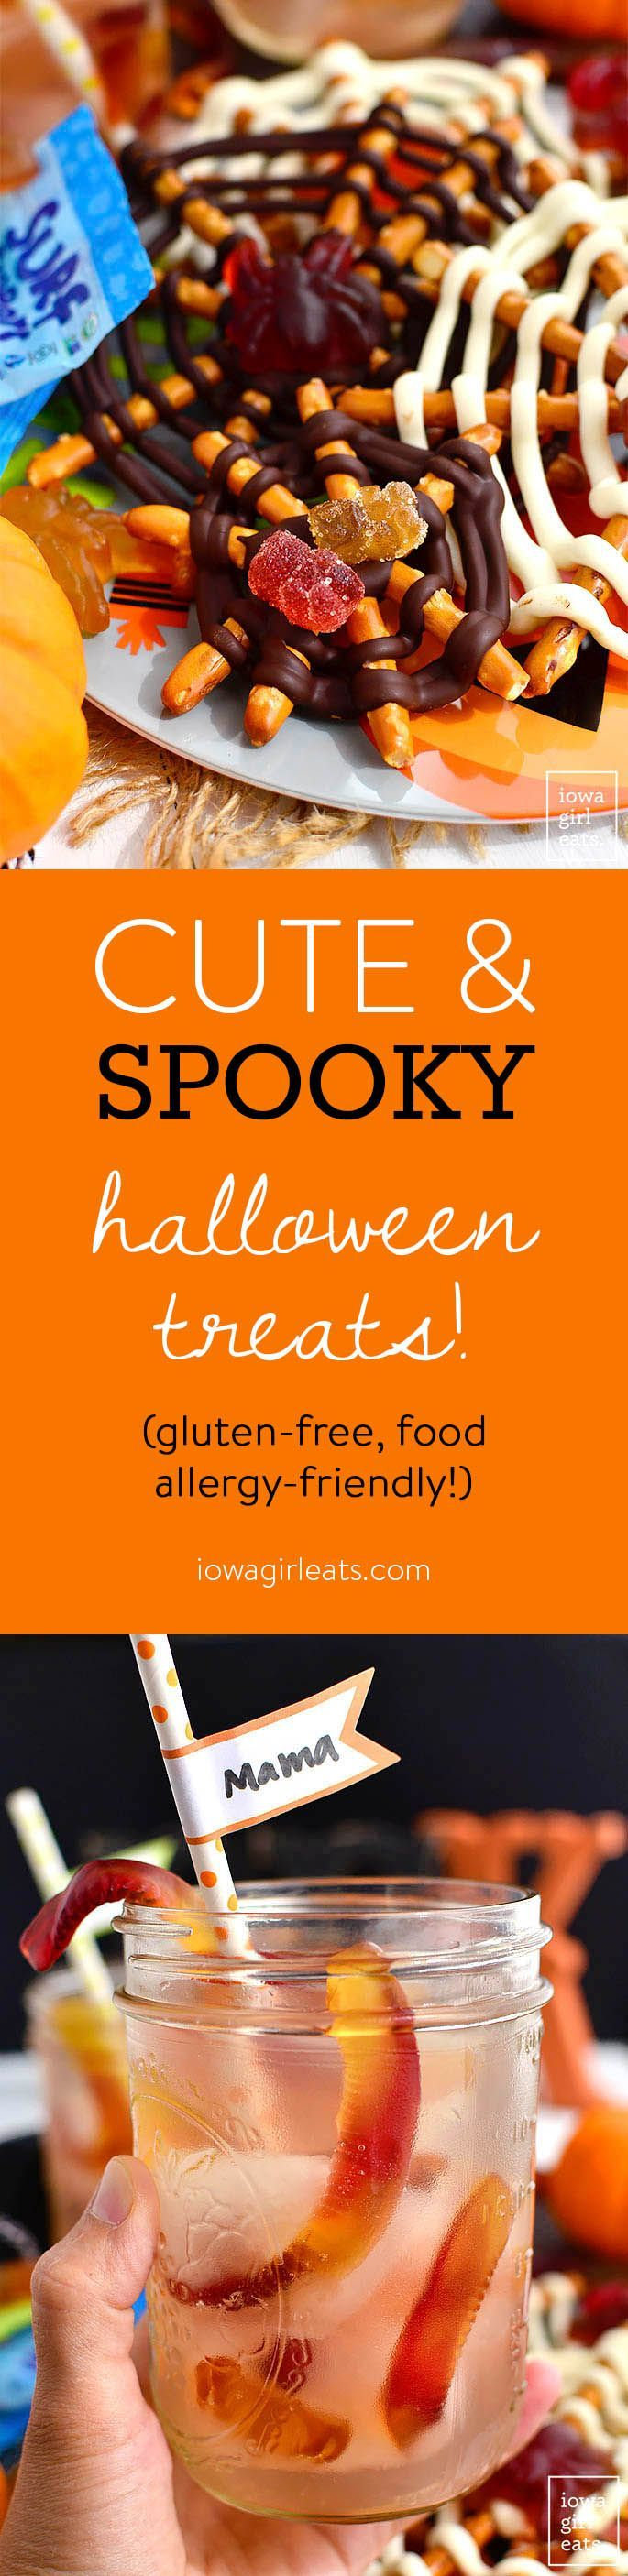 402 best Halloween Treats and Crafts images on Pinterest